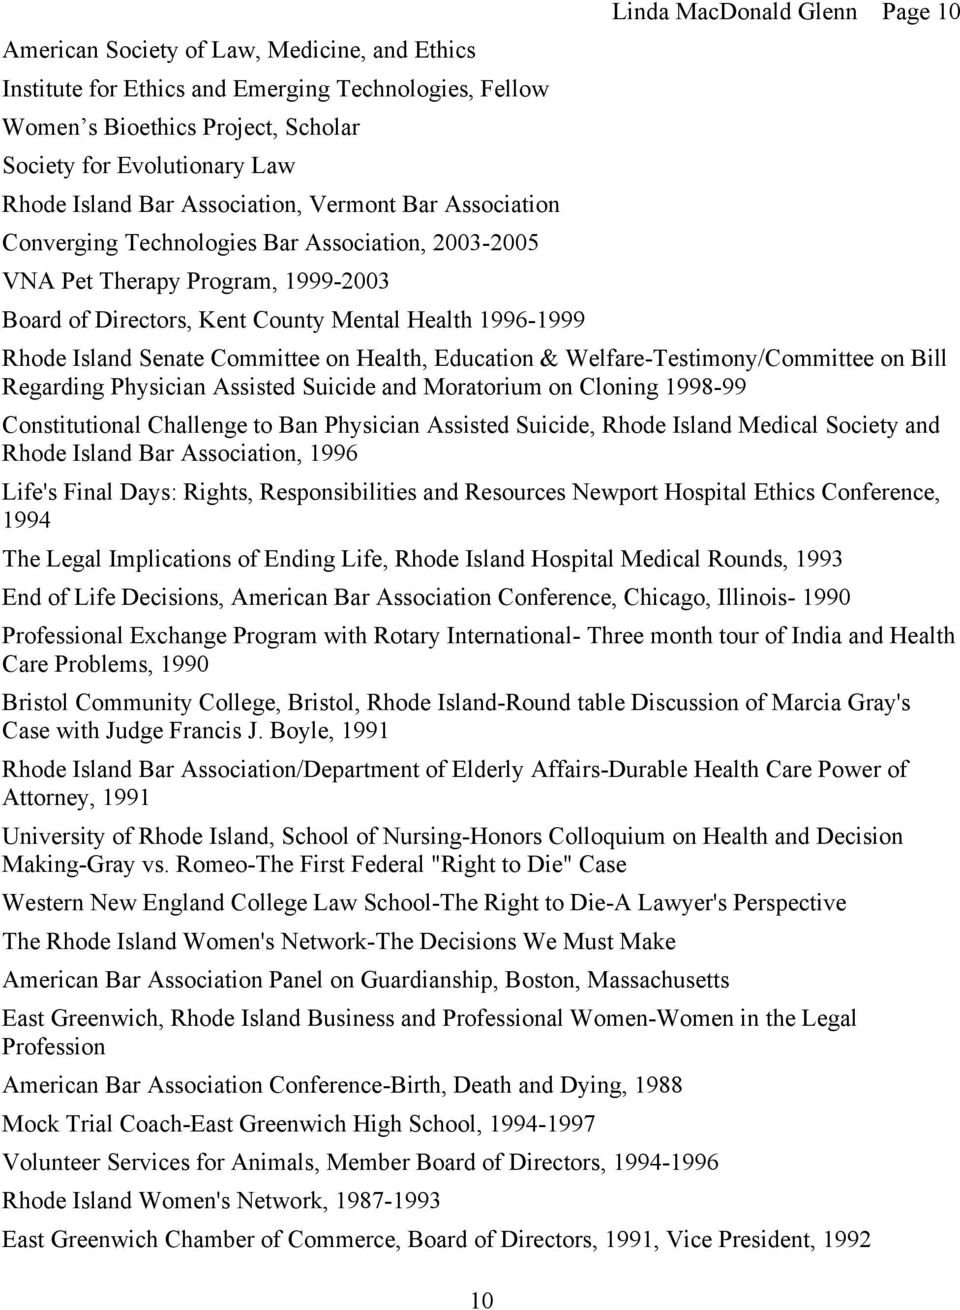 Rhode Island Senate Committee on Health, Education & Welfare-Testimony/Committee on Bill Regarding Physician Assisted Suicide and Moratorium on Cloning 1998-99 Constitutional Challenge to Ban